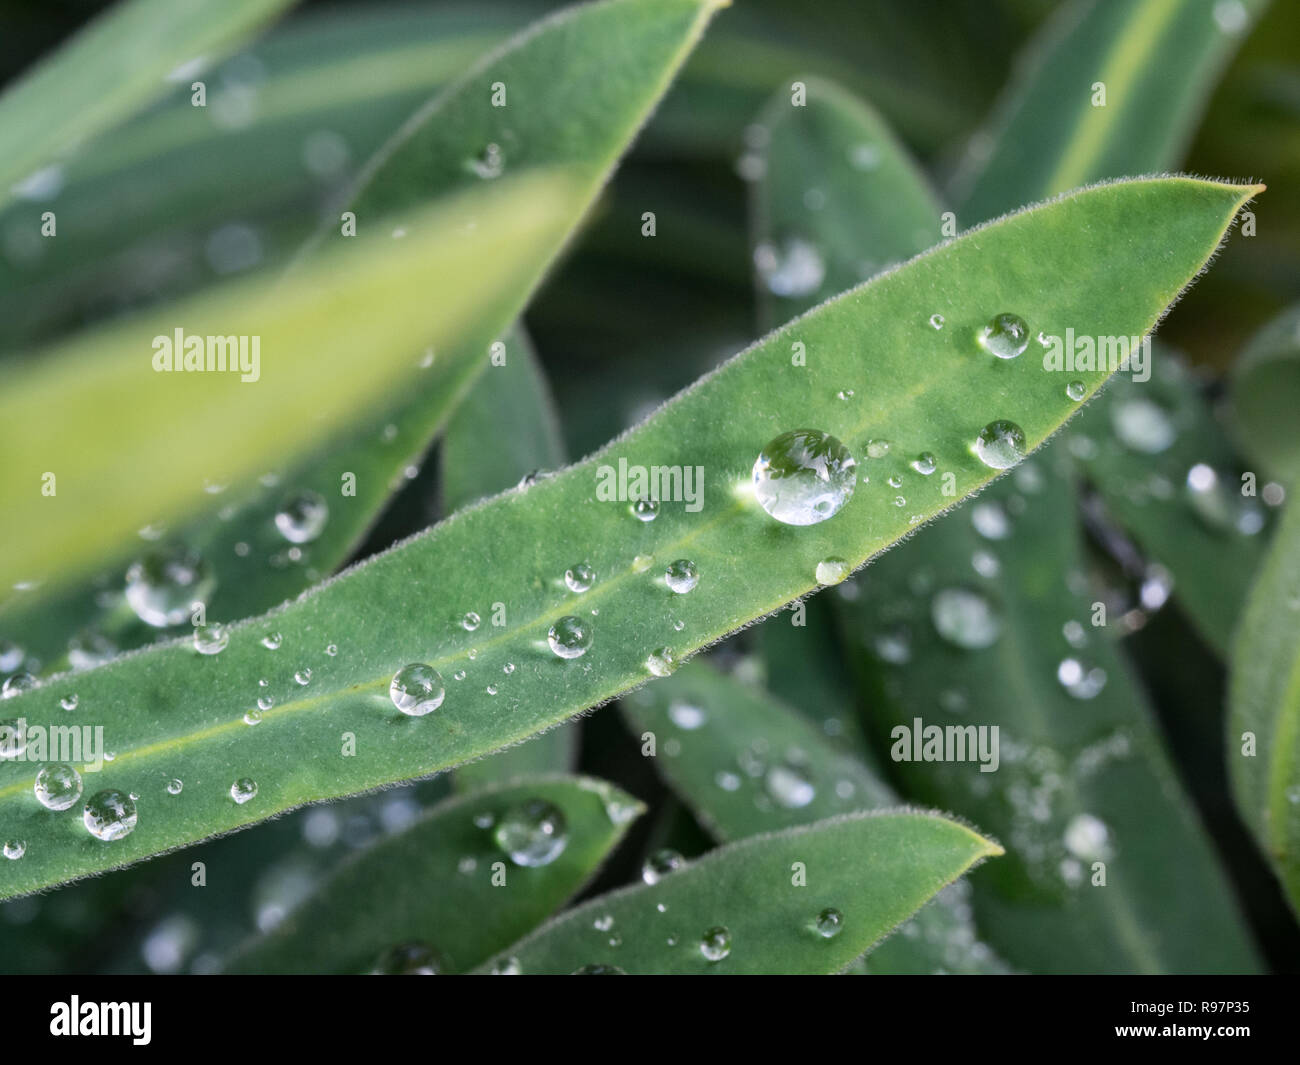 A close up of water droplets on the surface of Euphobia leaves - Stock Image